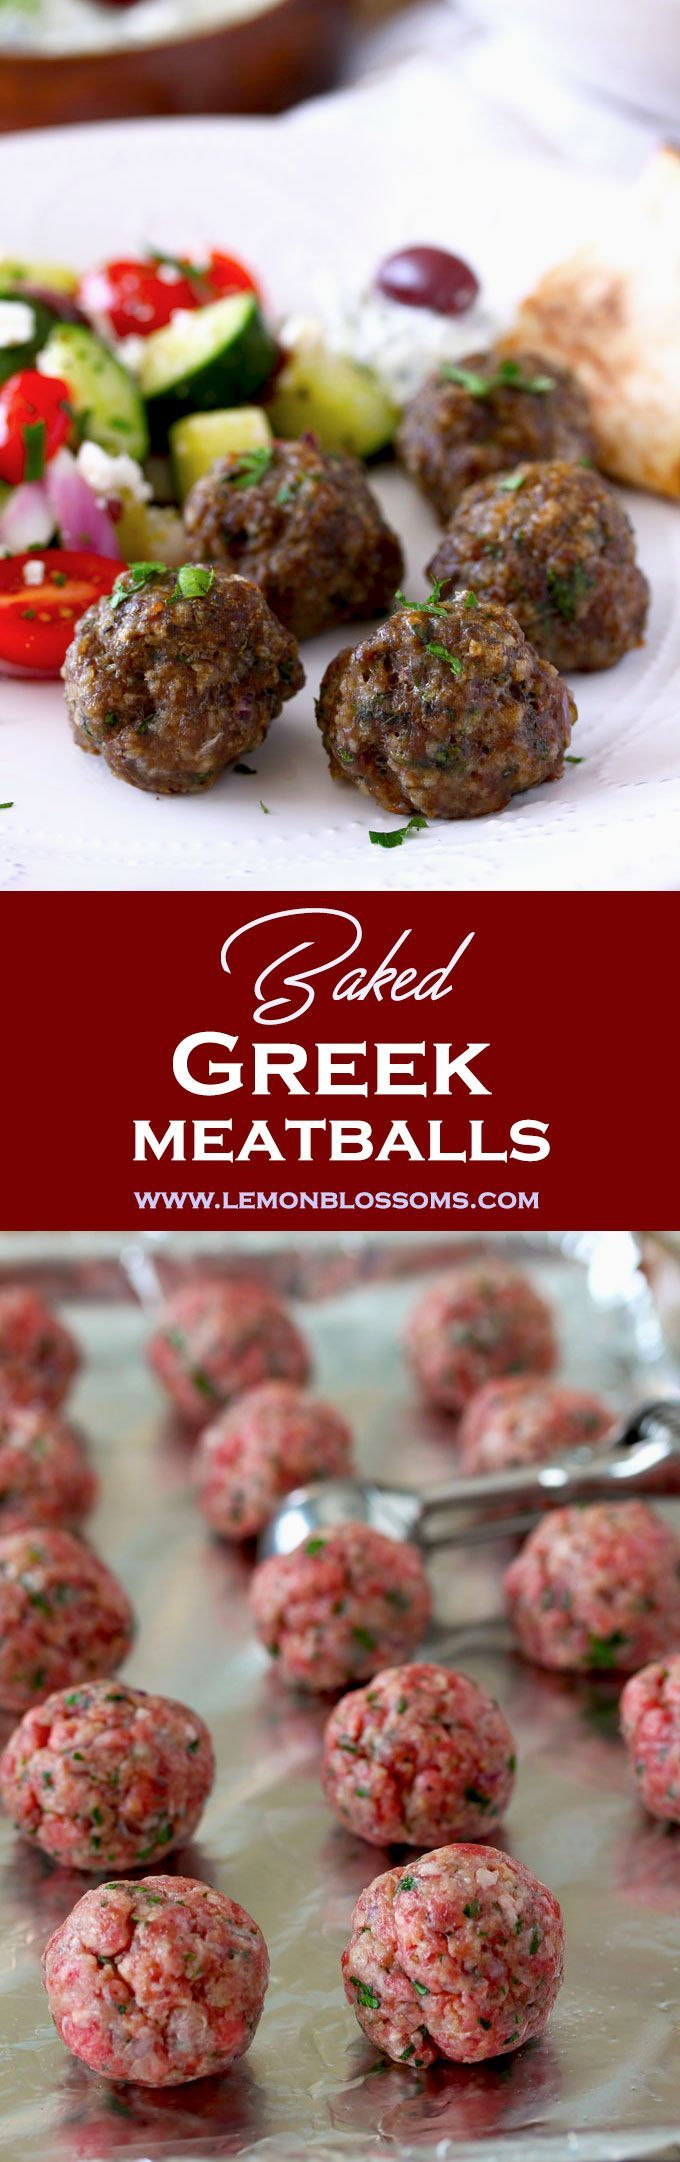 These Baked Greek Meatballs are seasoned with grated onion, garlic, oregano, fresh parsley and mint. Perfectly juicy and golden brown, they are great served as an appetizer or as part of dinner! #meatballs #Greekfood #bakedmeatballs #baked #easyrecipe